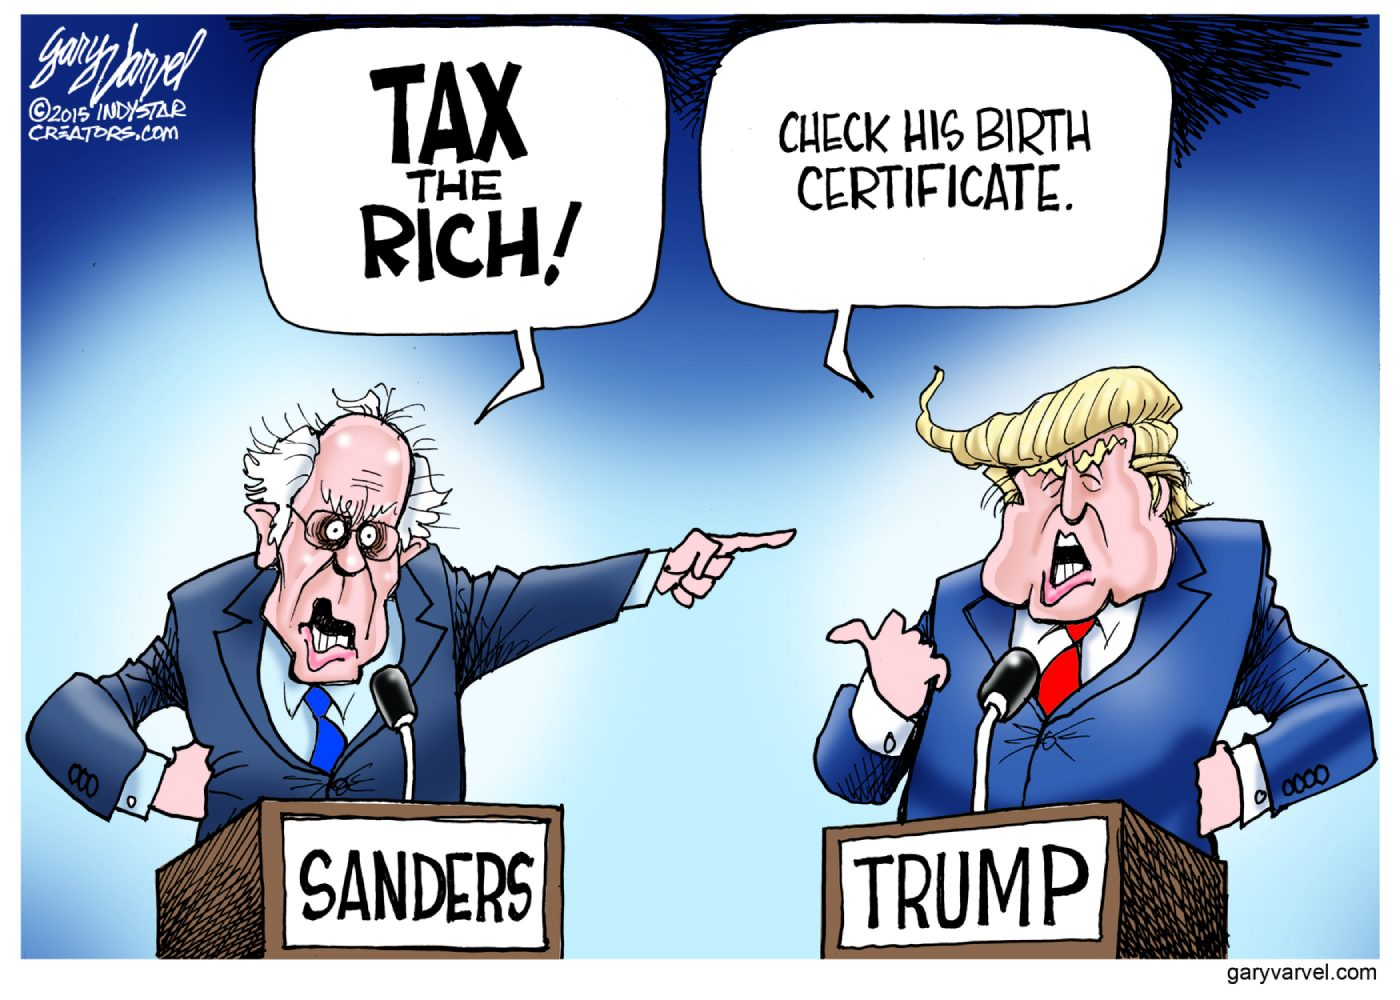 Sanders+and+Trump+humorously+debate+their+most+prominently+campaigned+arguments%3B+as+portrayed+by+political+cartoon.